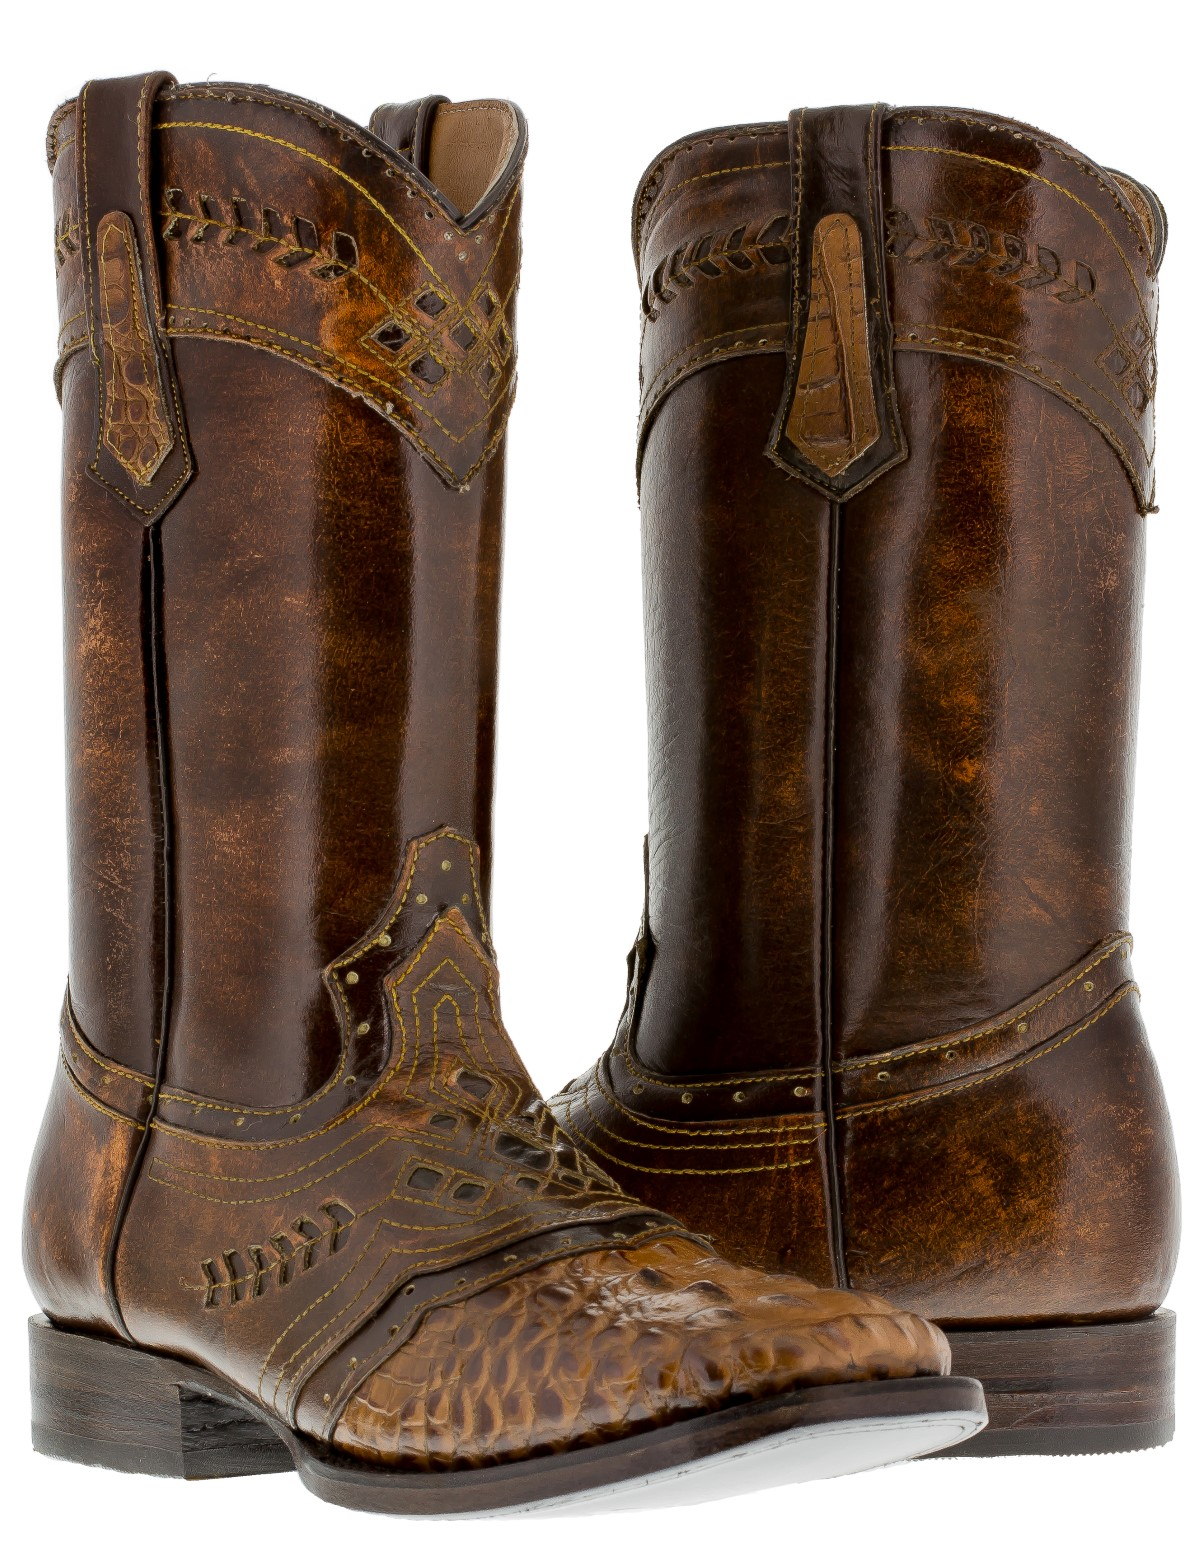 The Best Cowboy Boots Brands | FP Boots